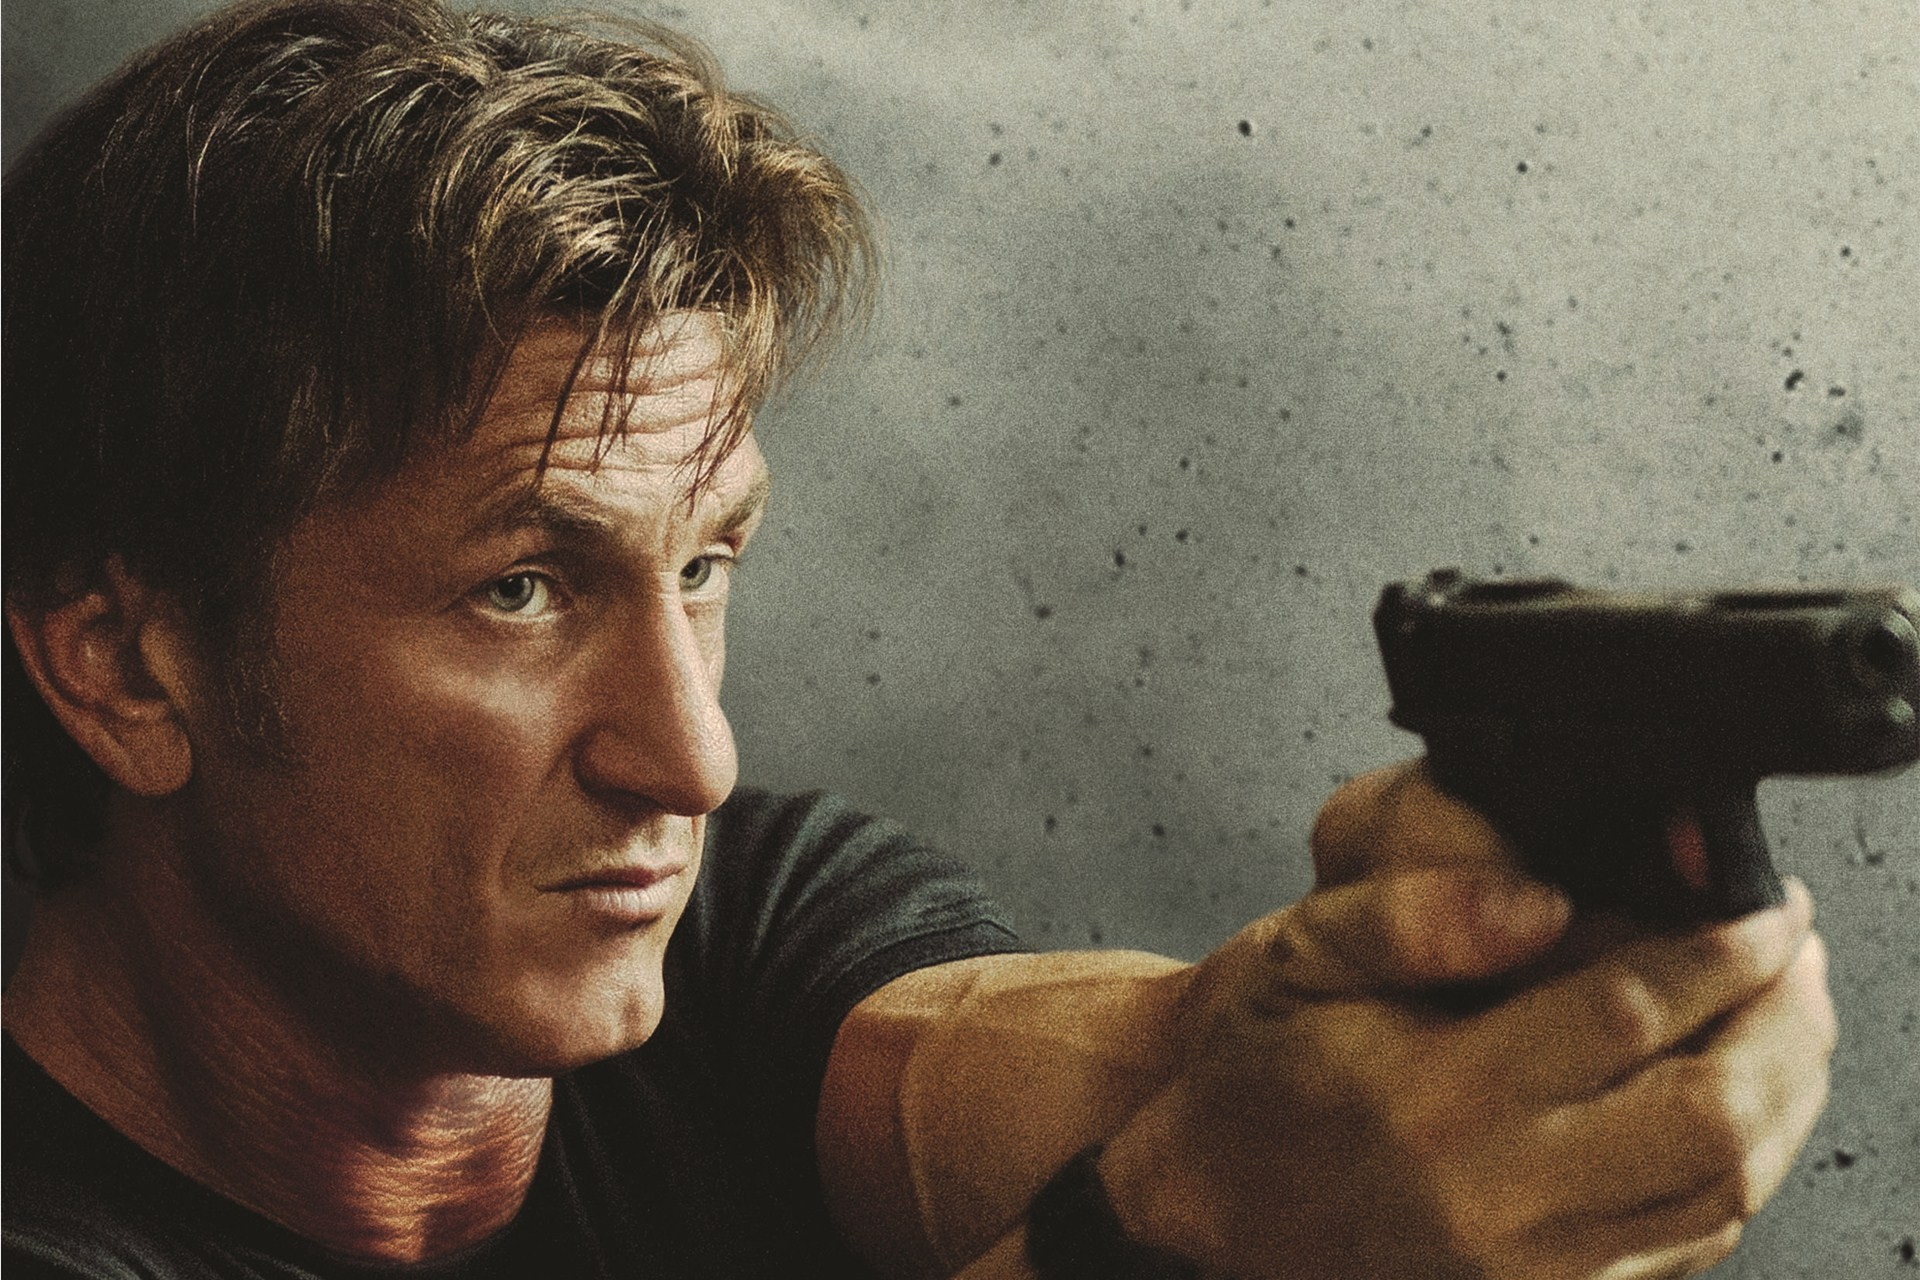 With The Upcoming Release Of 'The Gunman', We Take A Look At Action Movies vs Real Life